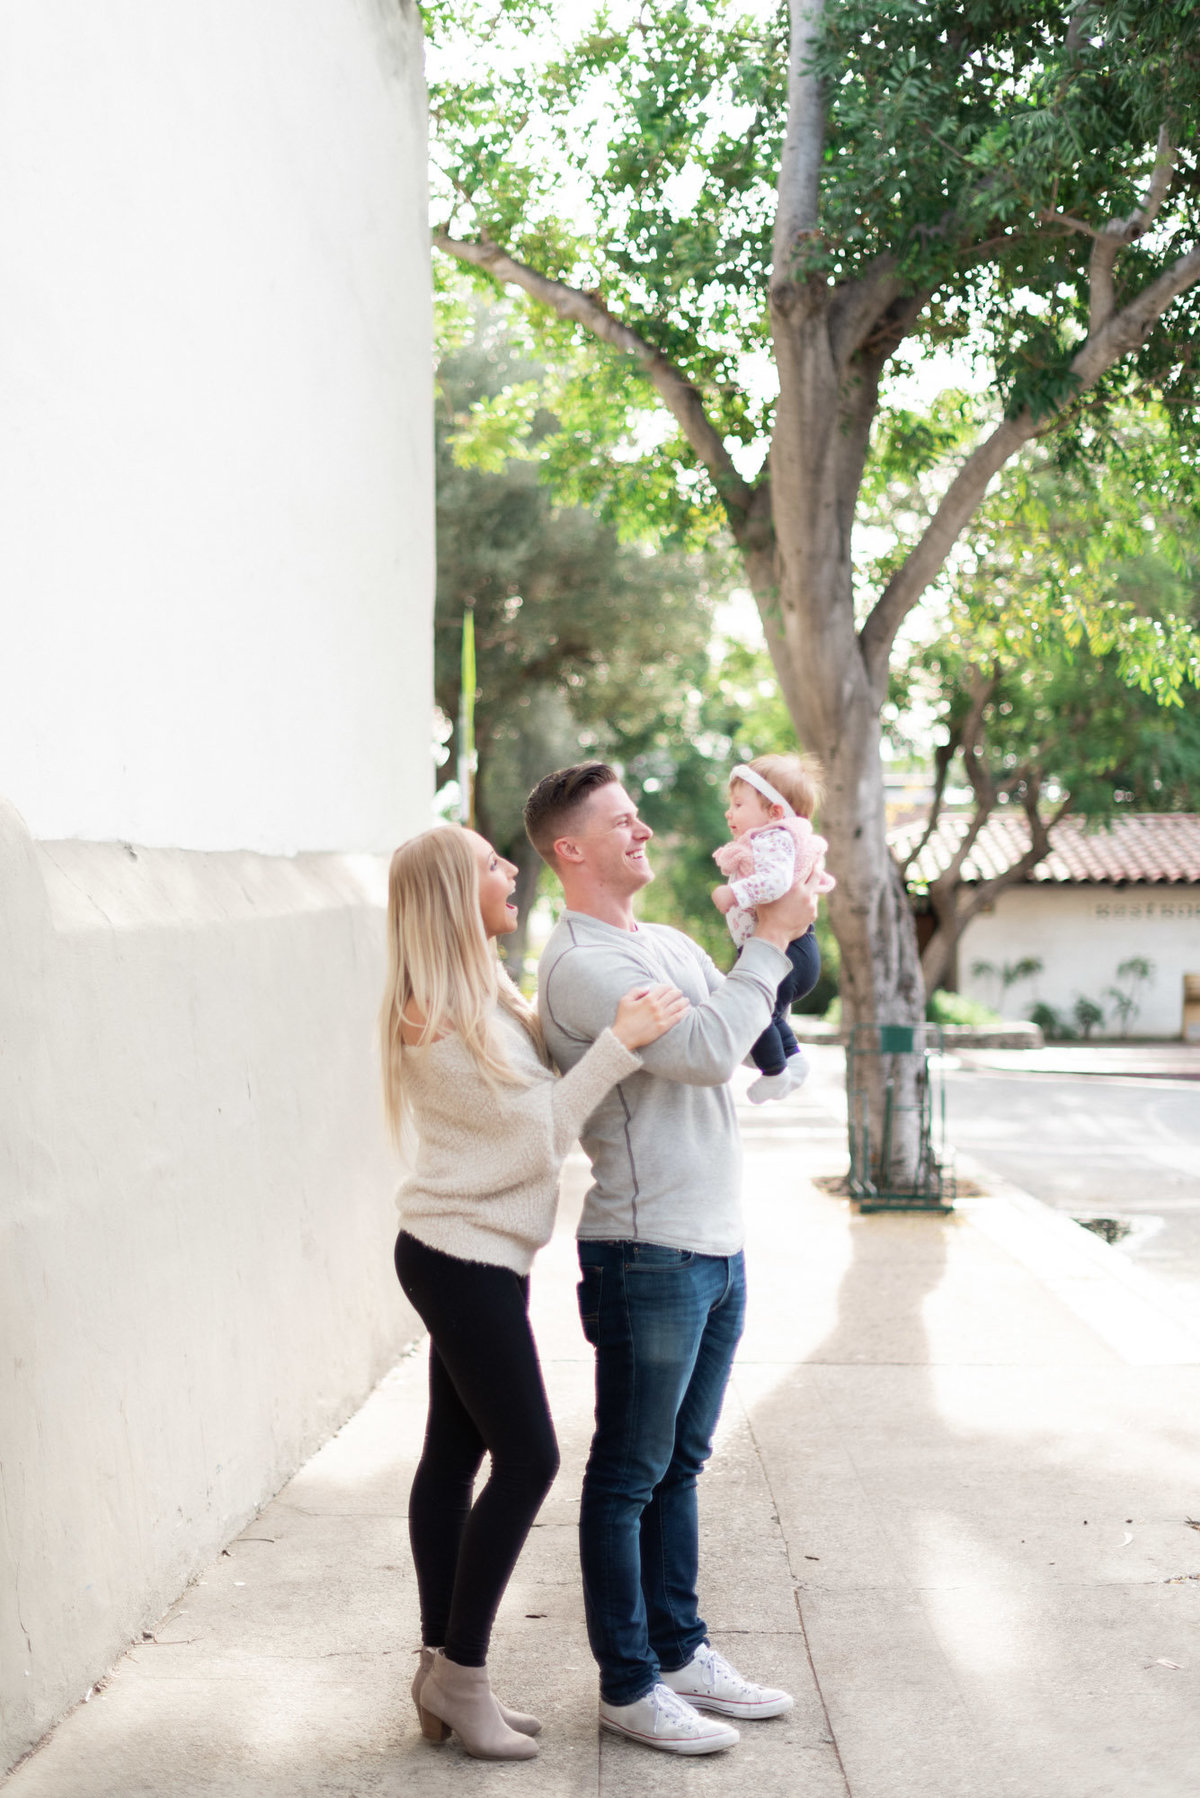 San-Luis-Obispo-Family-Session-by-Central-Coast-Portrait-Photographer-Kirsten-Bullard-5